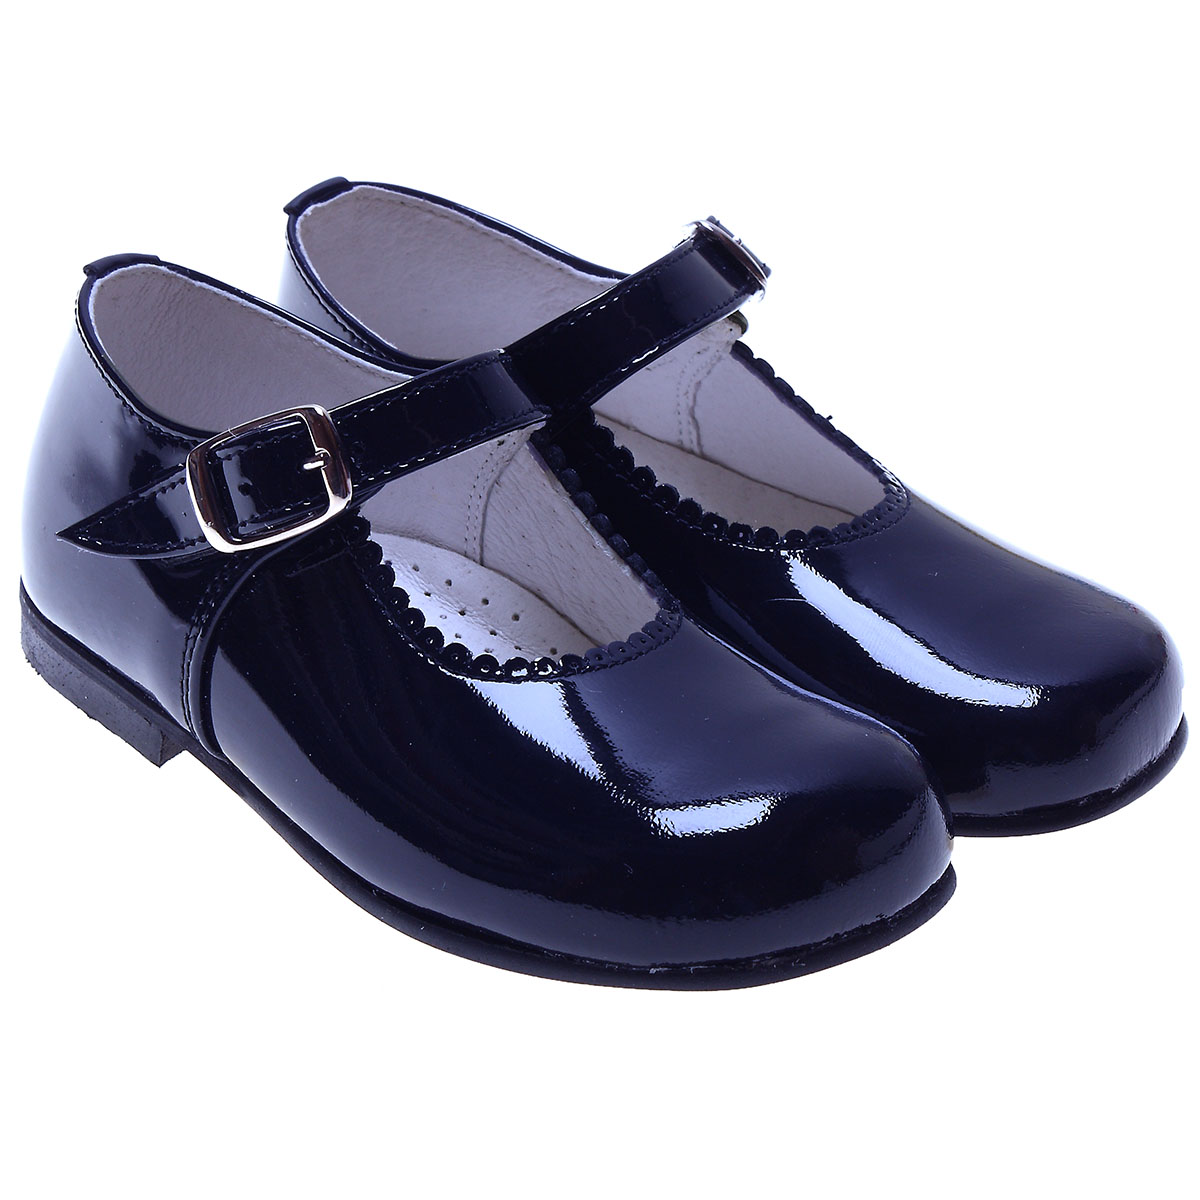 Classic Mary Jane Navy Shoes In Patent For a Toddle Girl ...